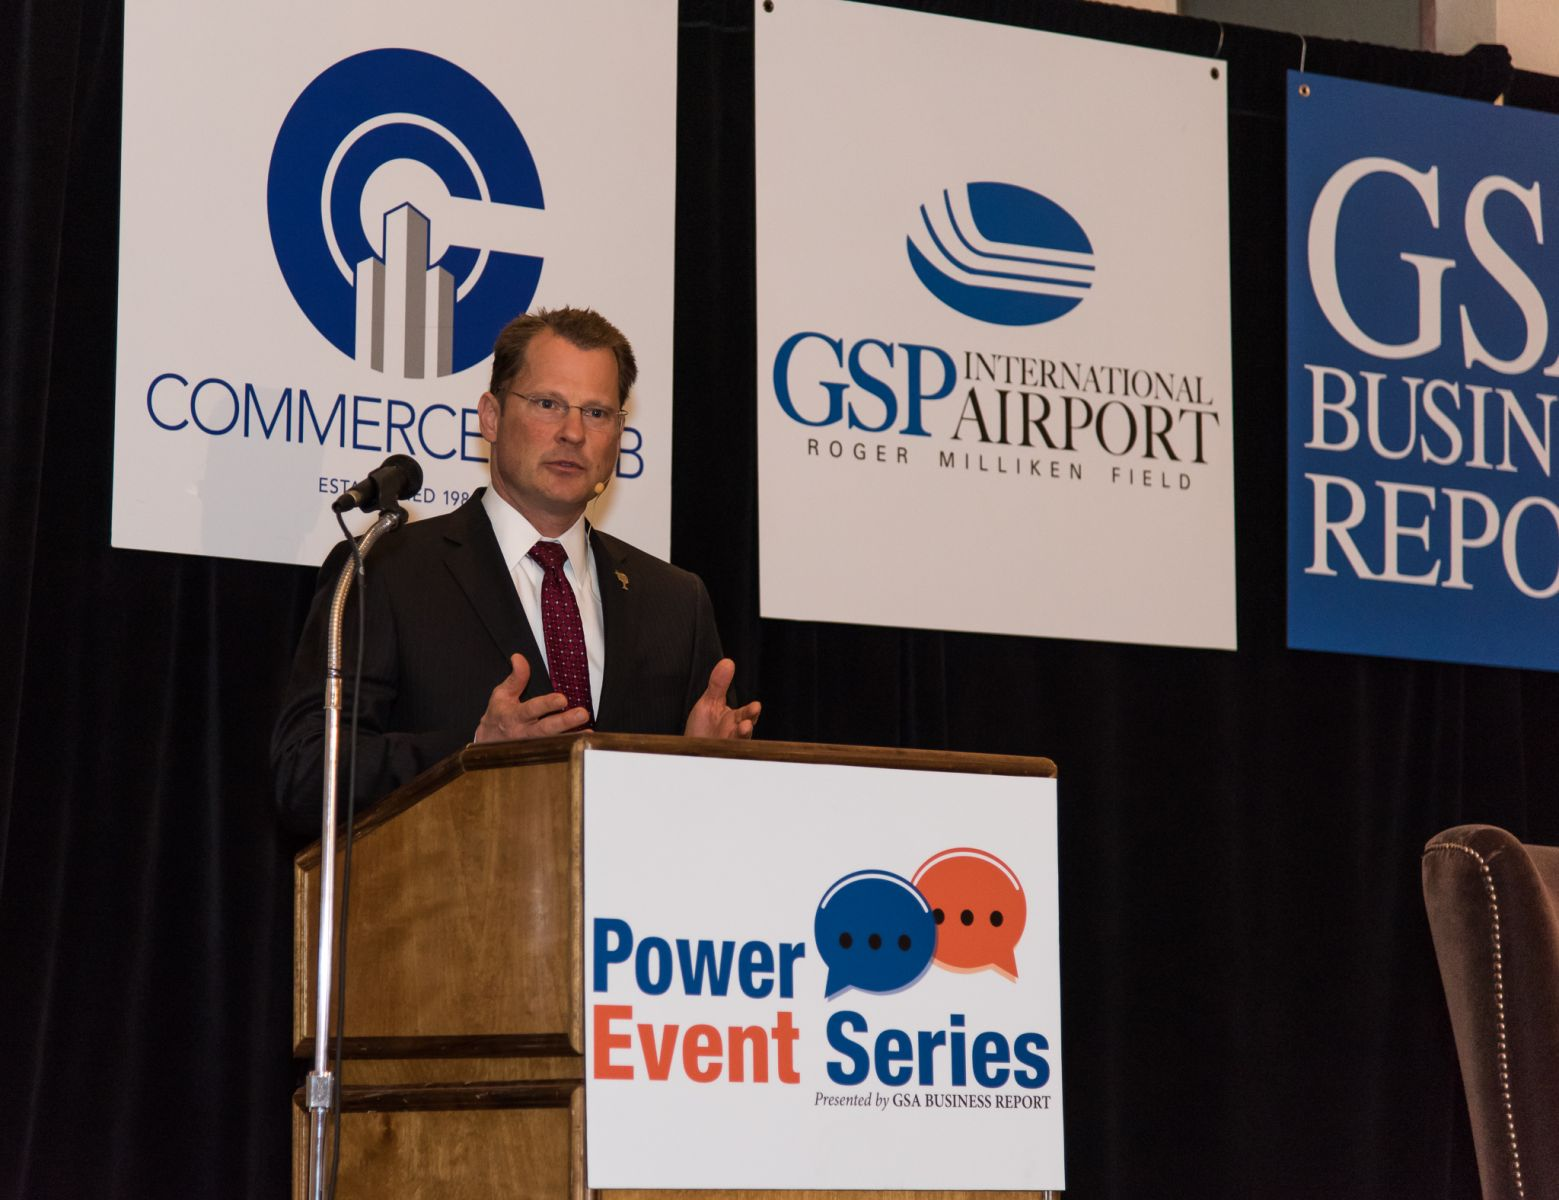 Lt. Gov. Kevin Bryant discussed the state's economy during a GSA Business Report Power Event on Thursday. (Photo/Kathy Allen)